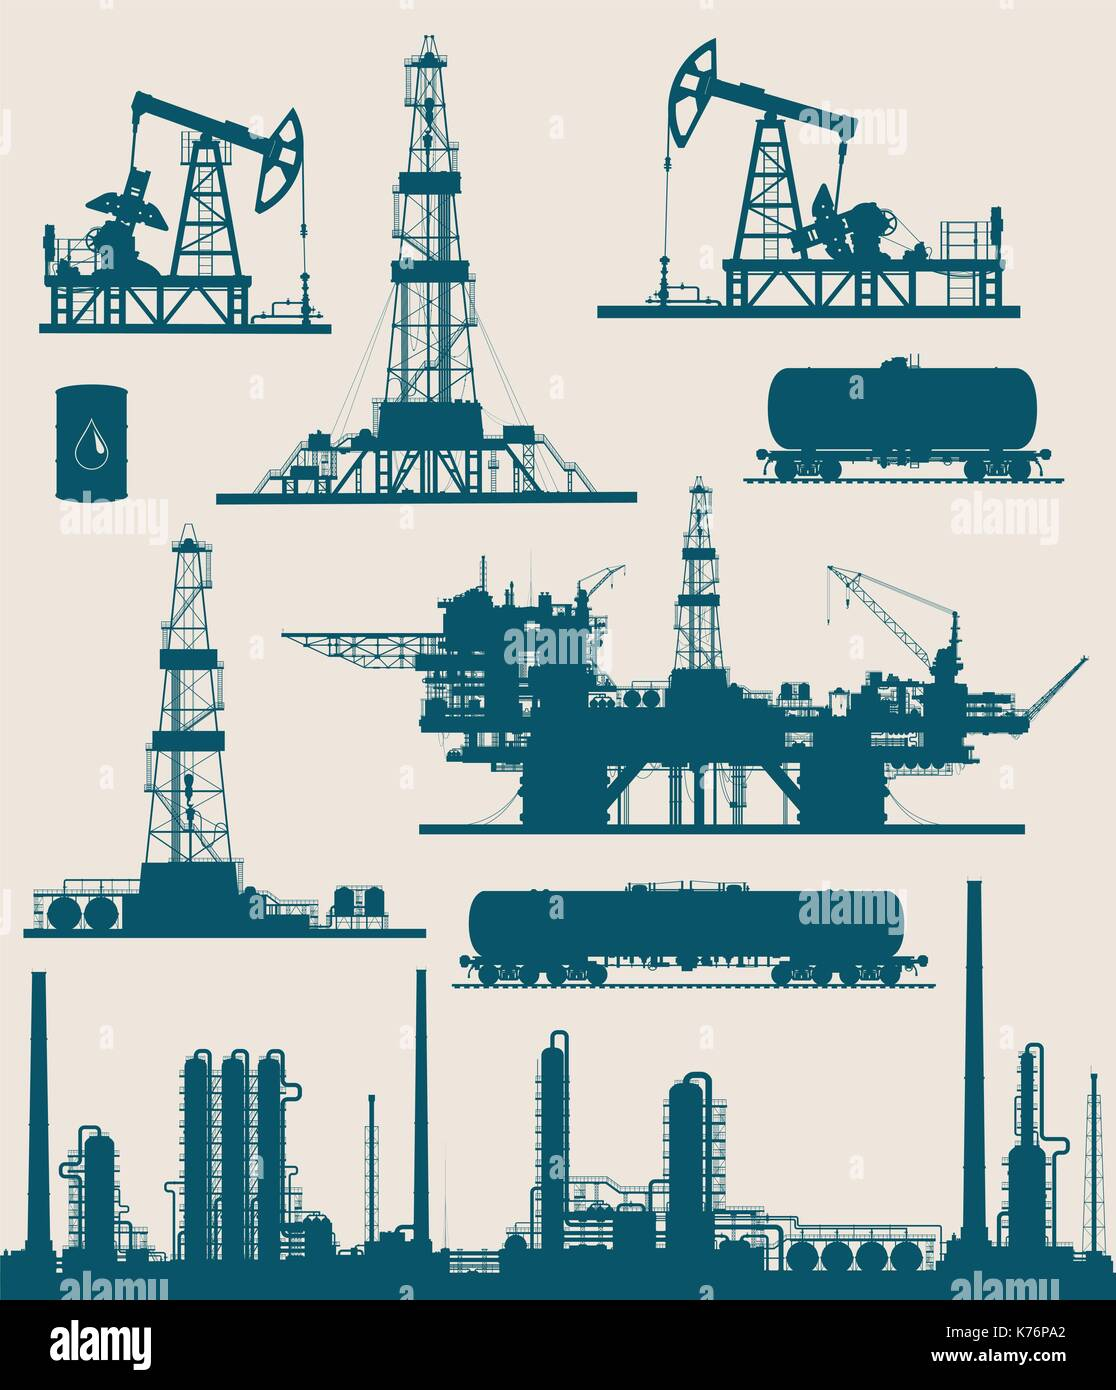 Oil and gas industry set - Stock Vector